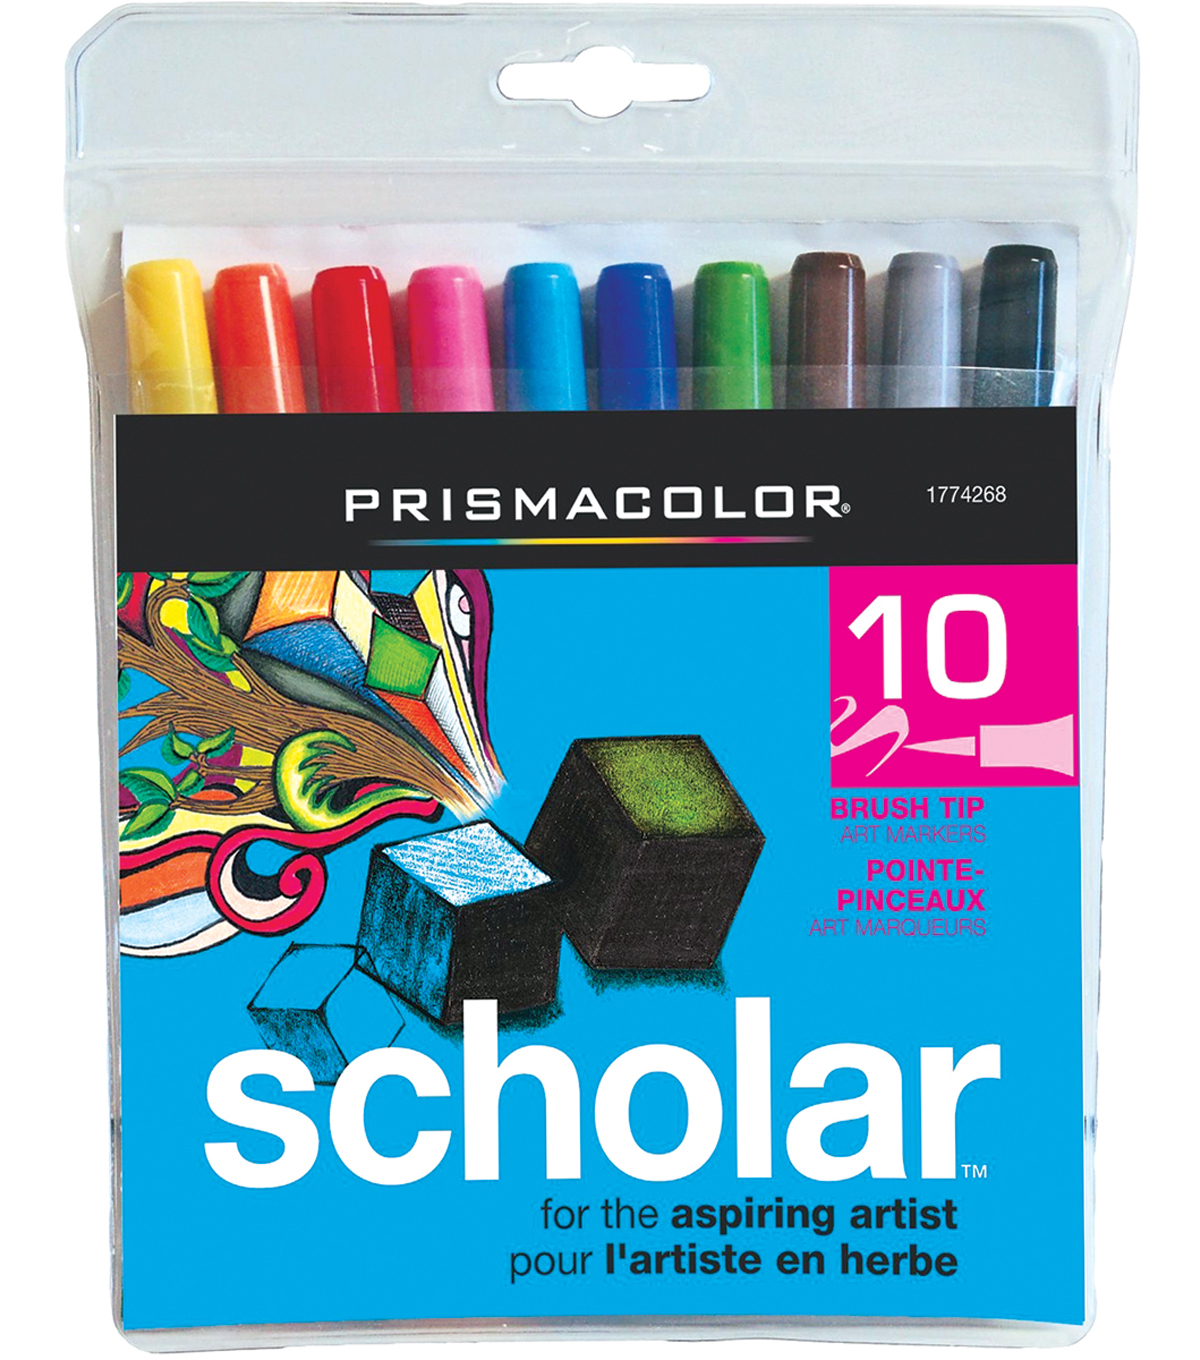 Prismacolor Scholar Brush Marker 10/Pk-